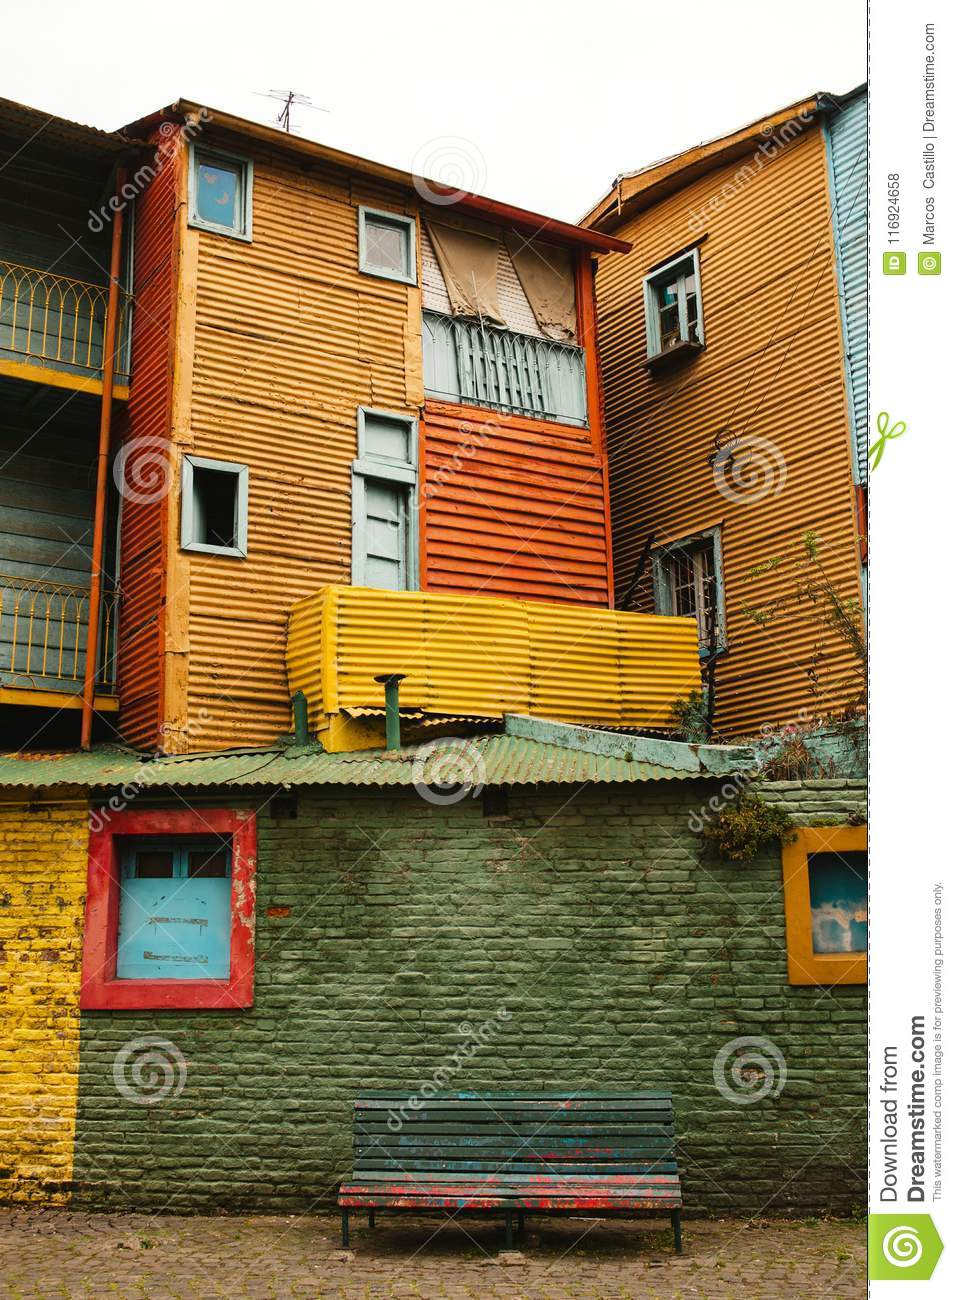 La Boca neighborhood of Buenos Aires Argentina